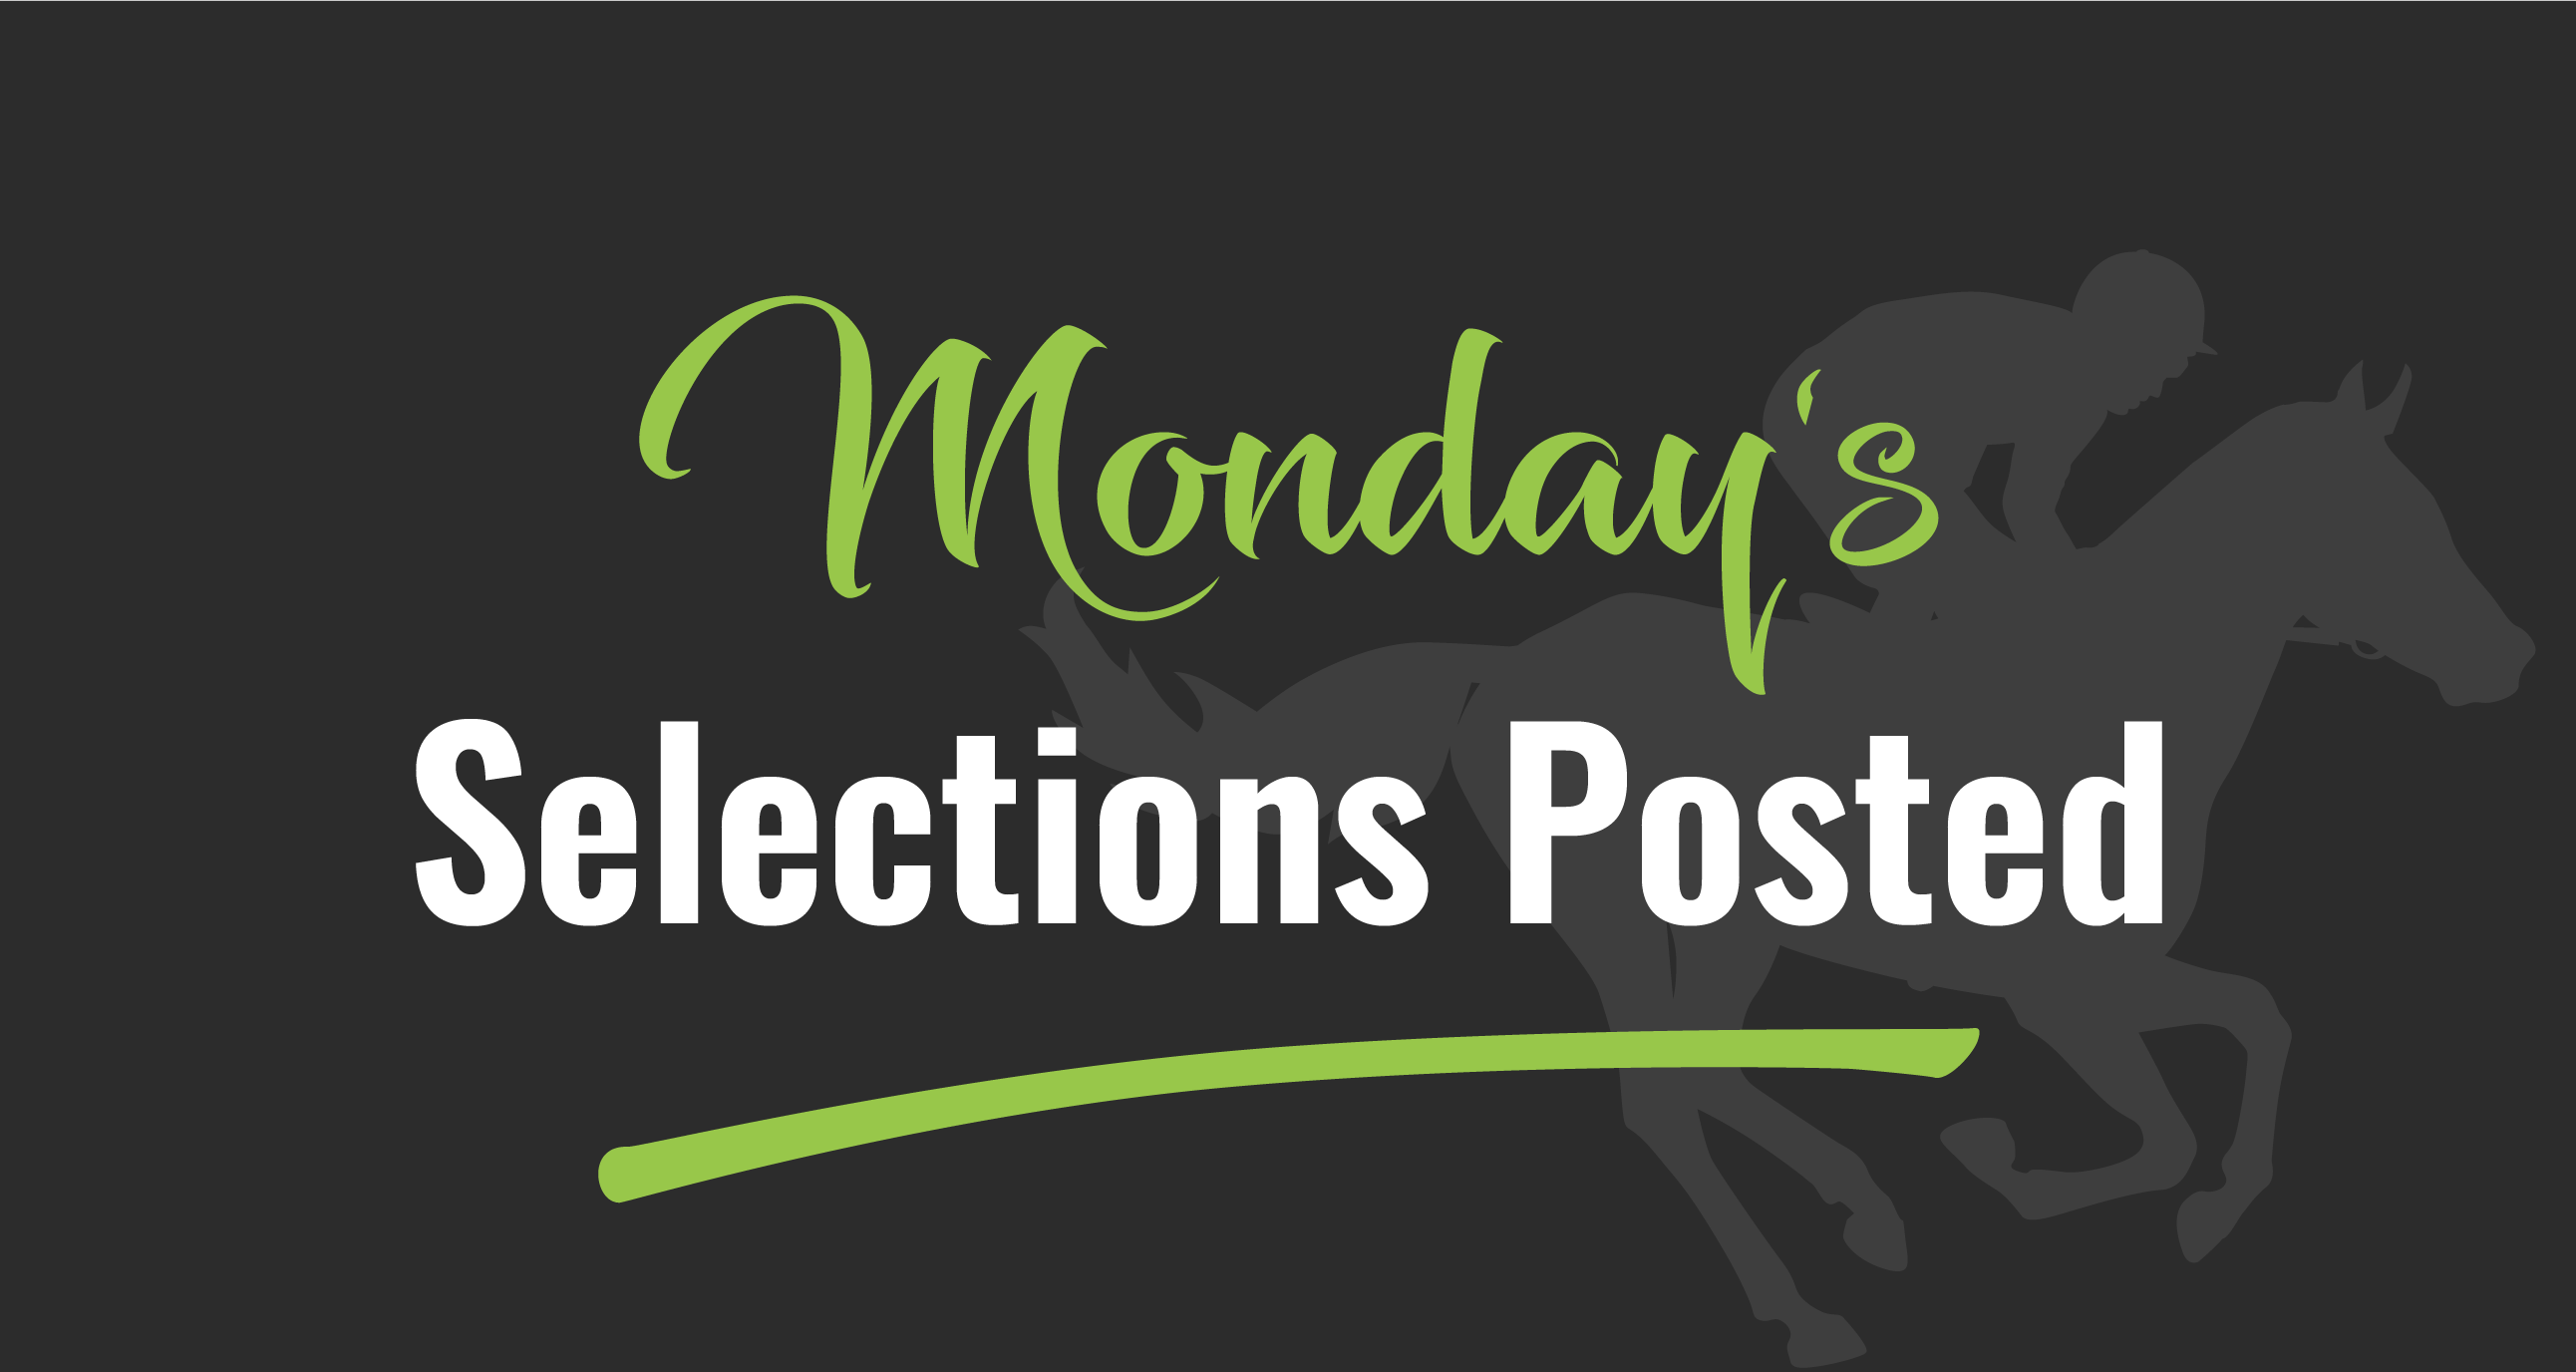 Selections for Monday 16 September 2019